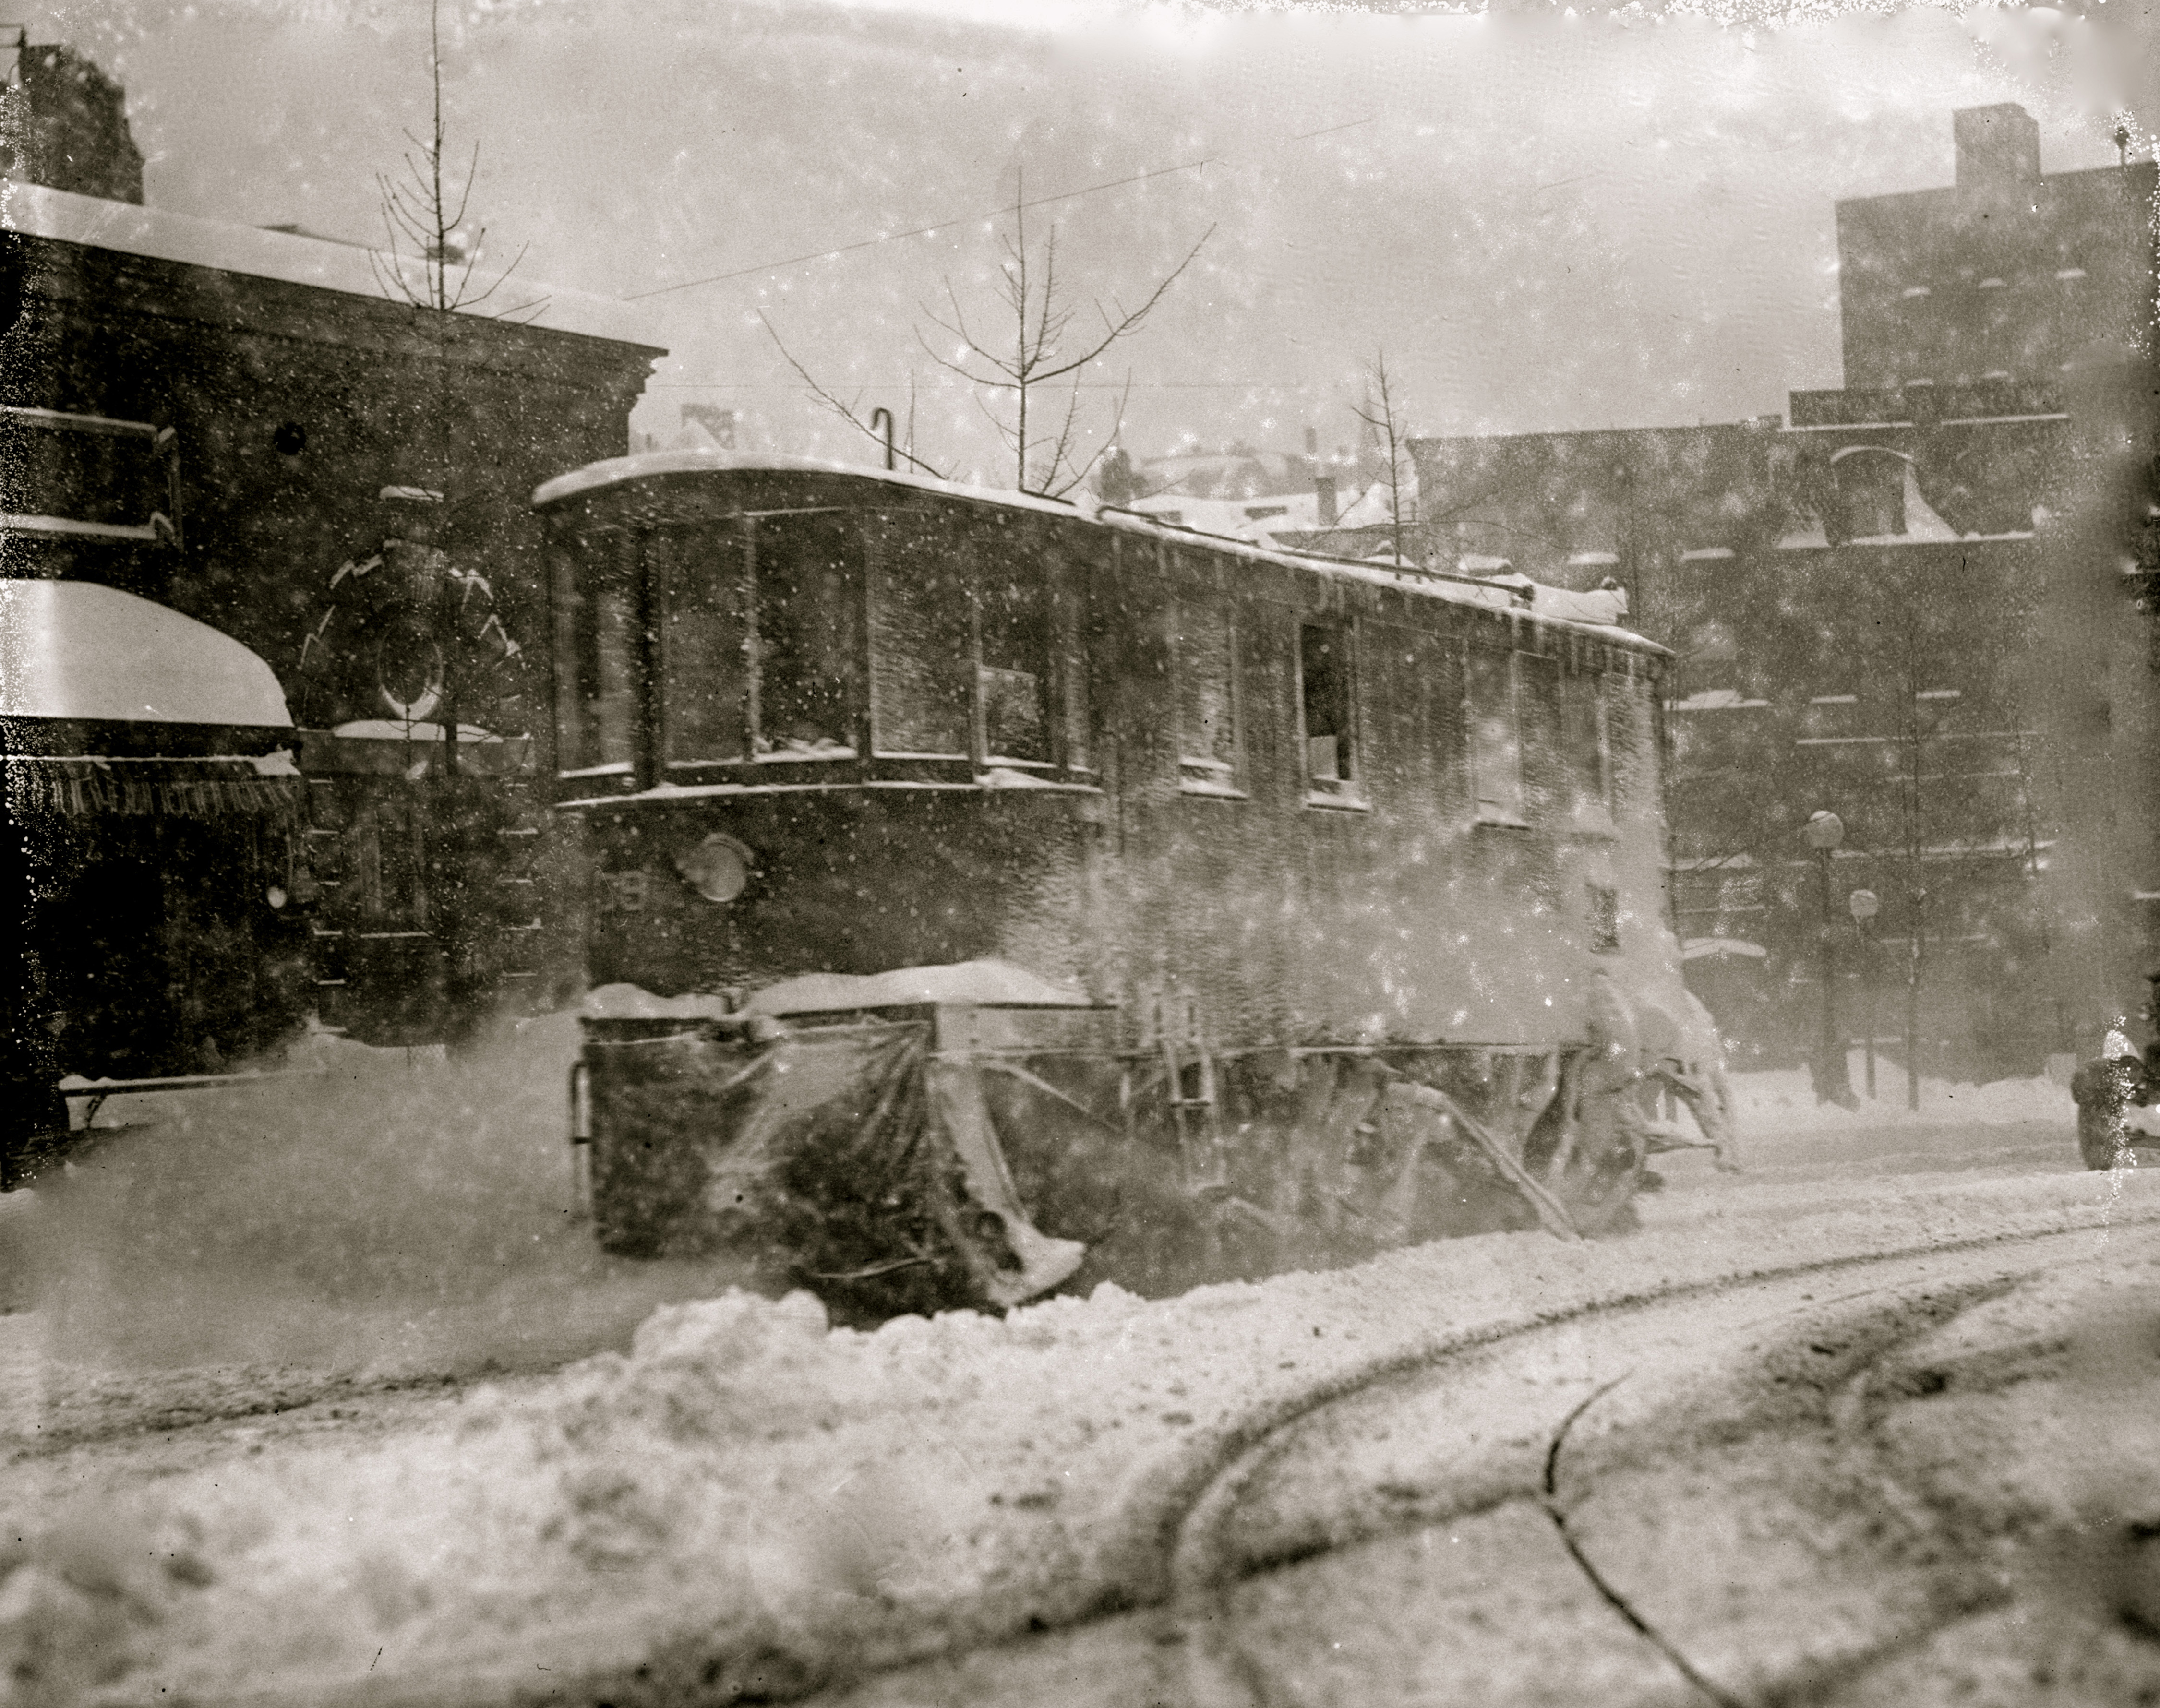 A streetcar during the 1888 blizzard.